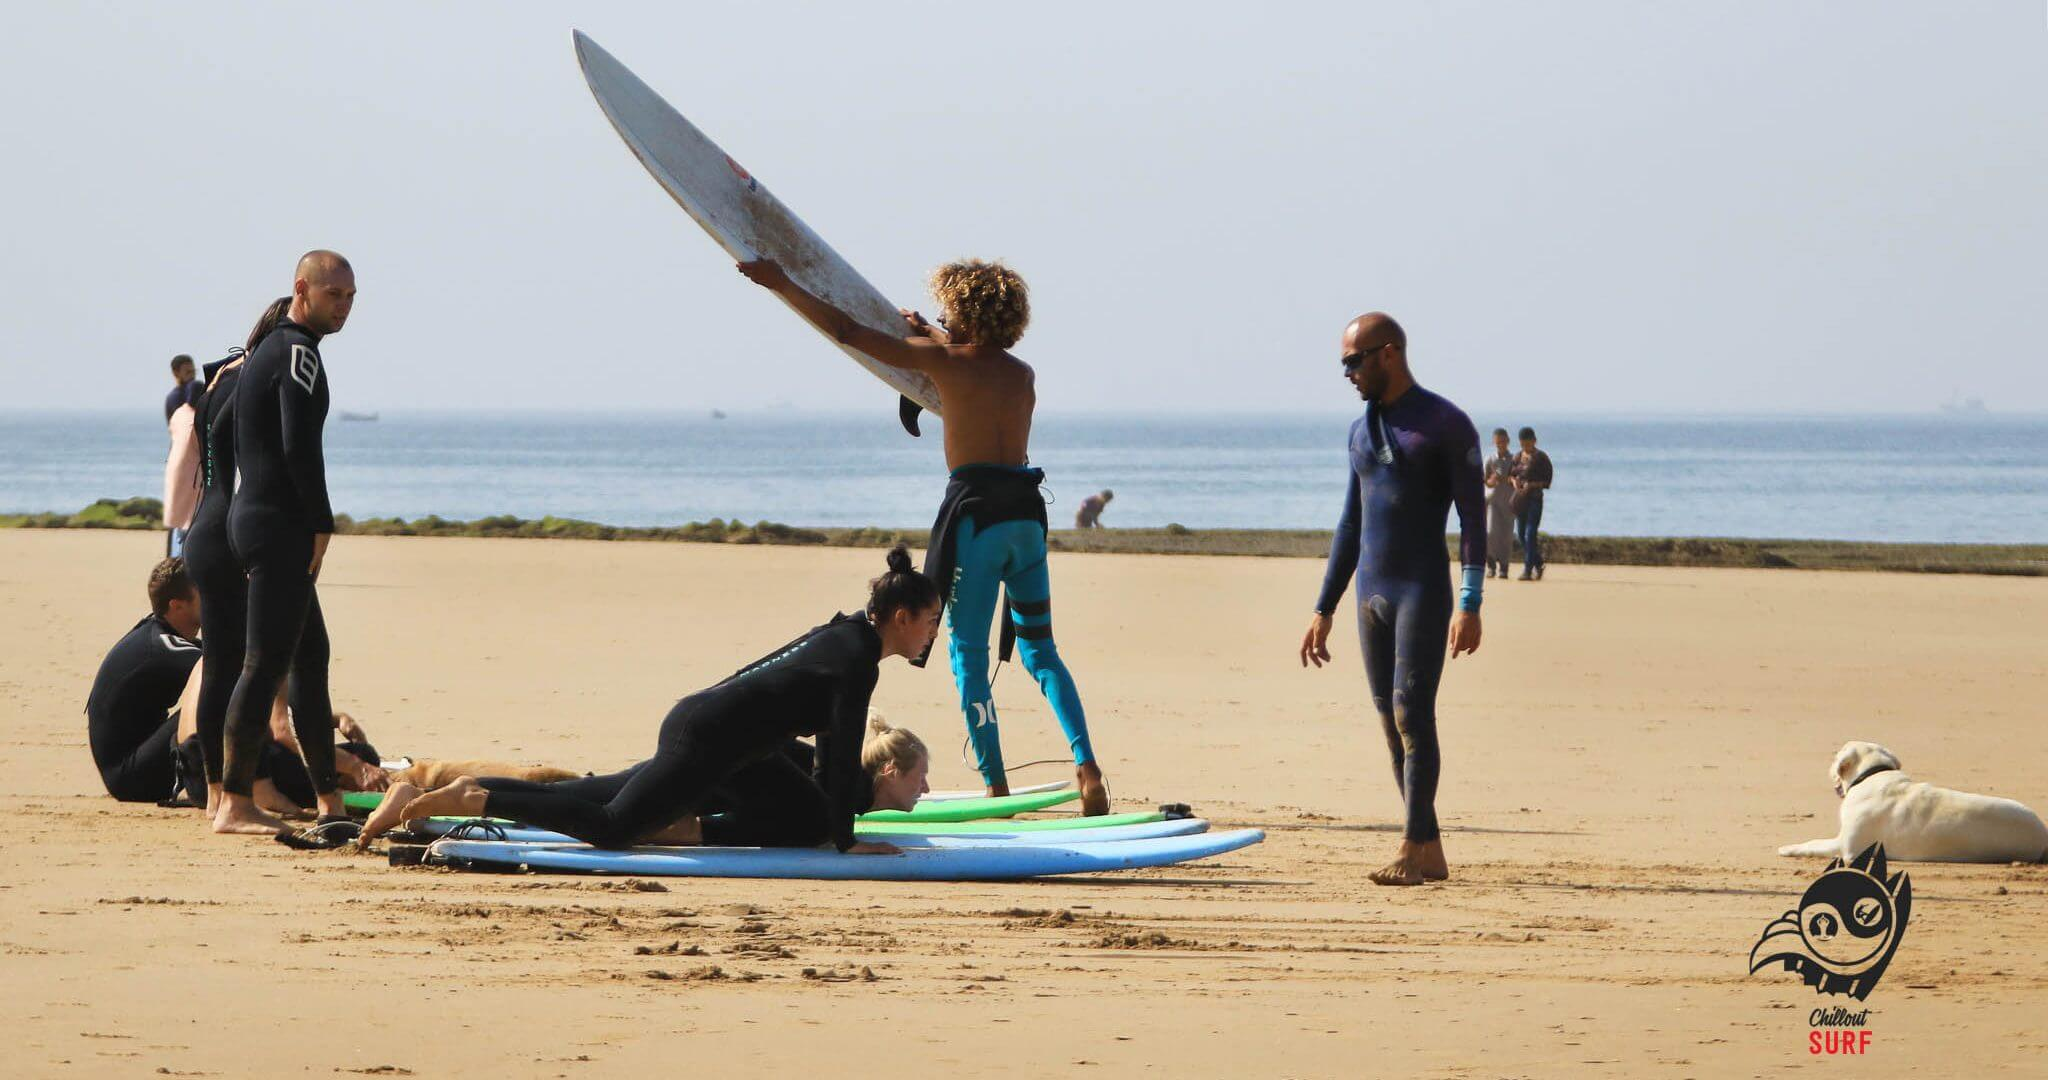 Surf Taghazout Morocco